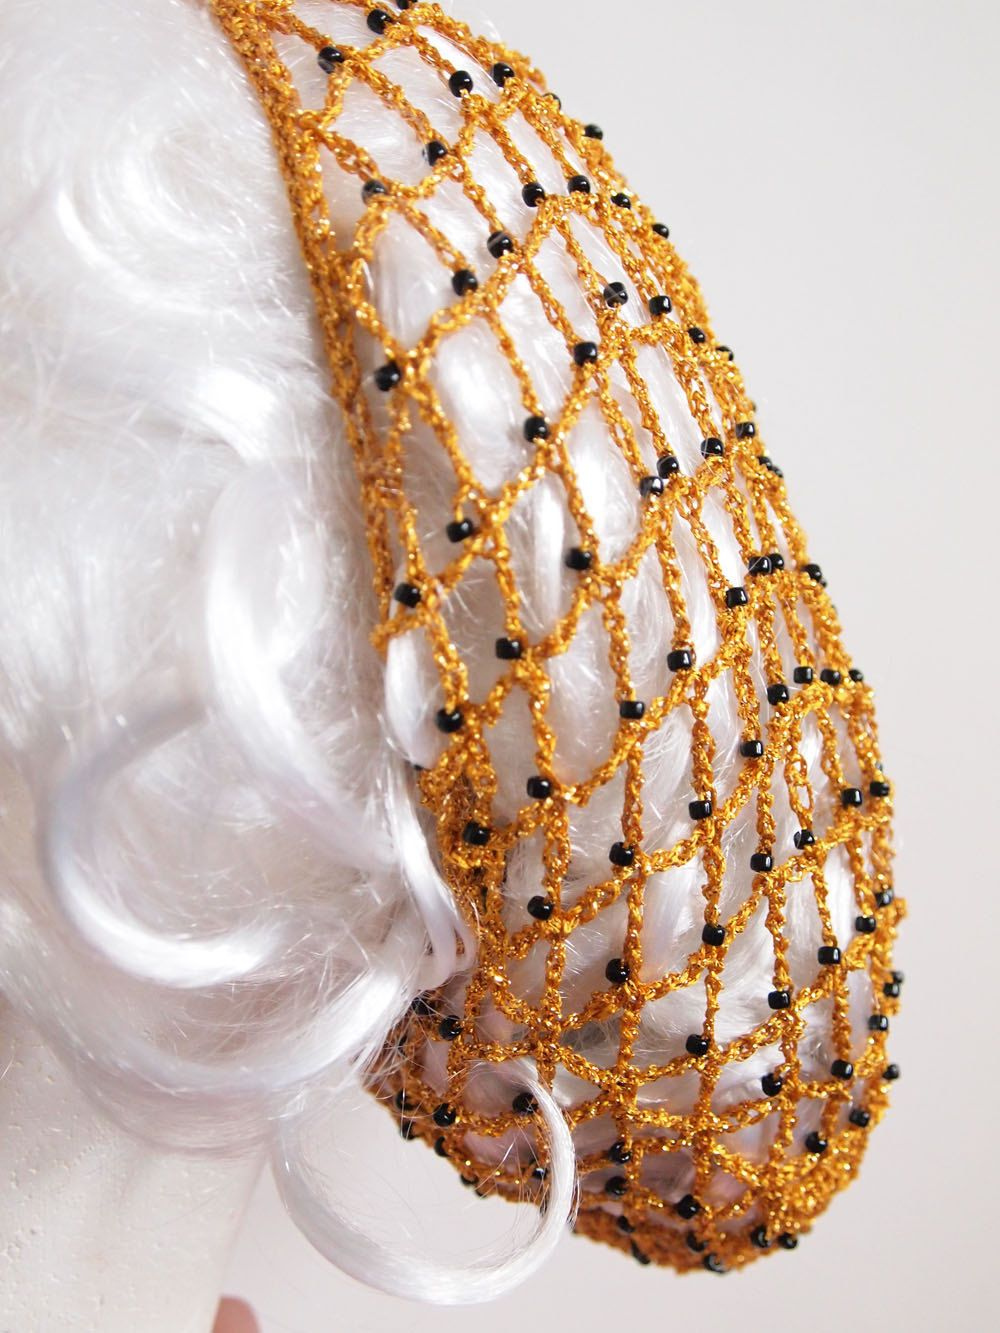 Hairnet Snood 1940s Style Crochet In Gold With Black Beads Gold Lam� Snood